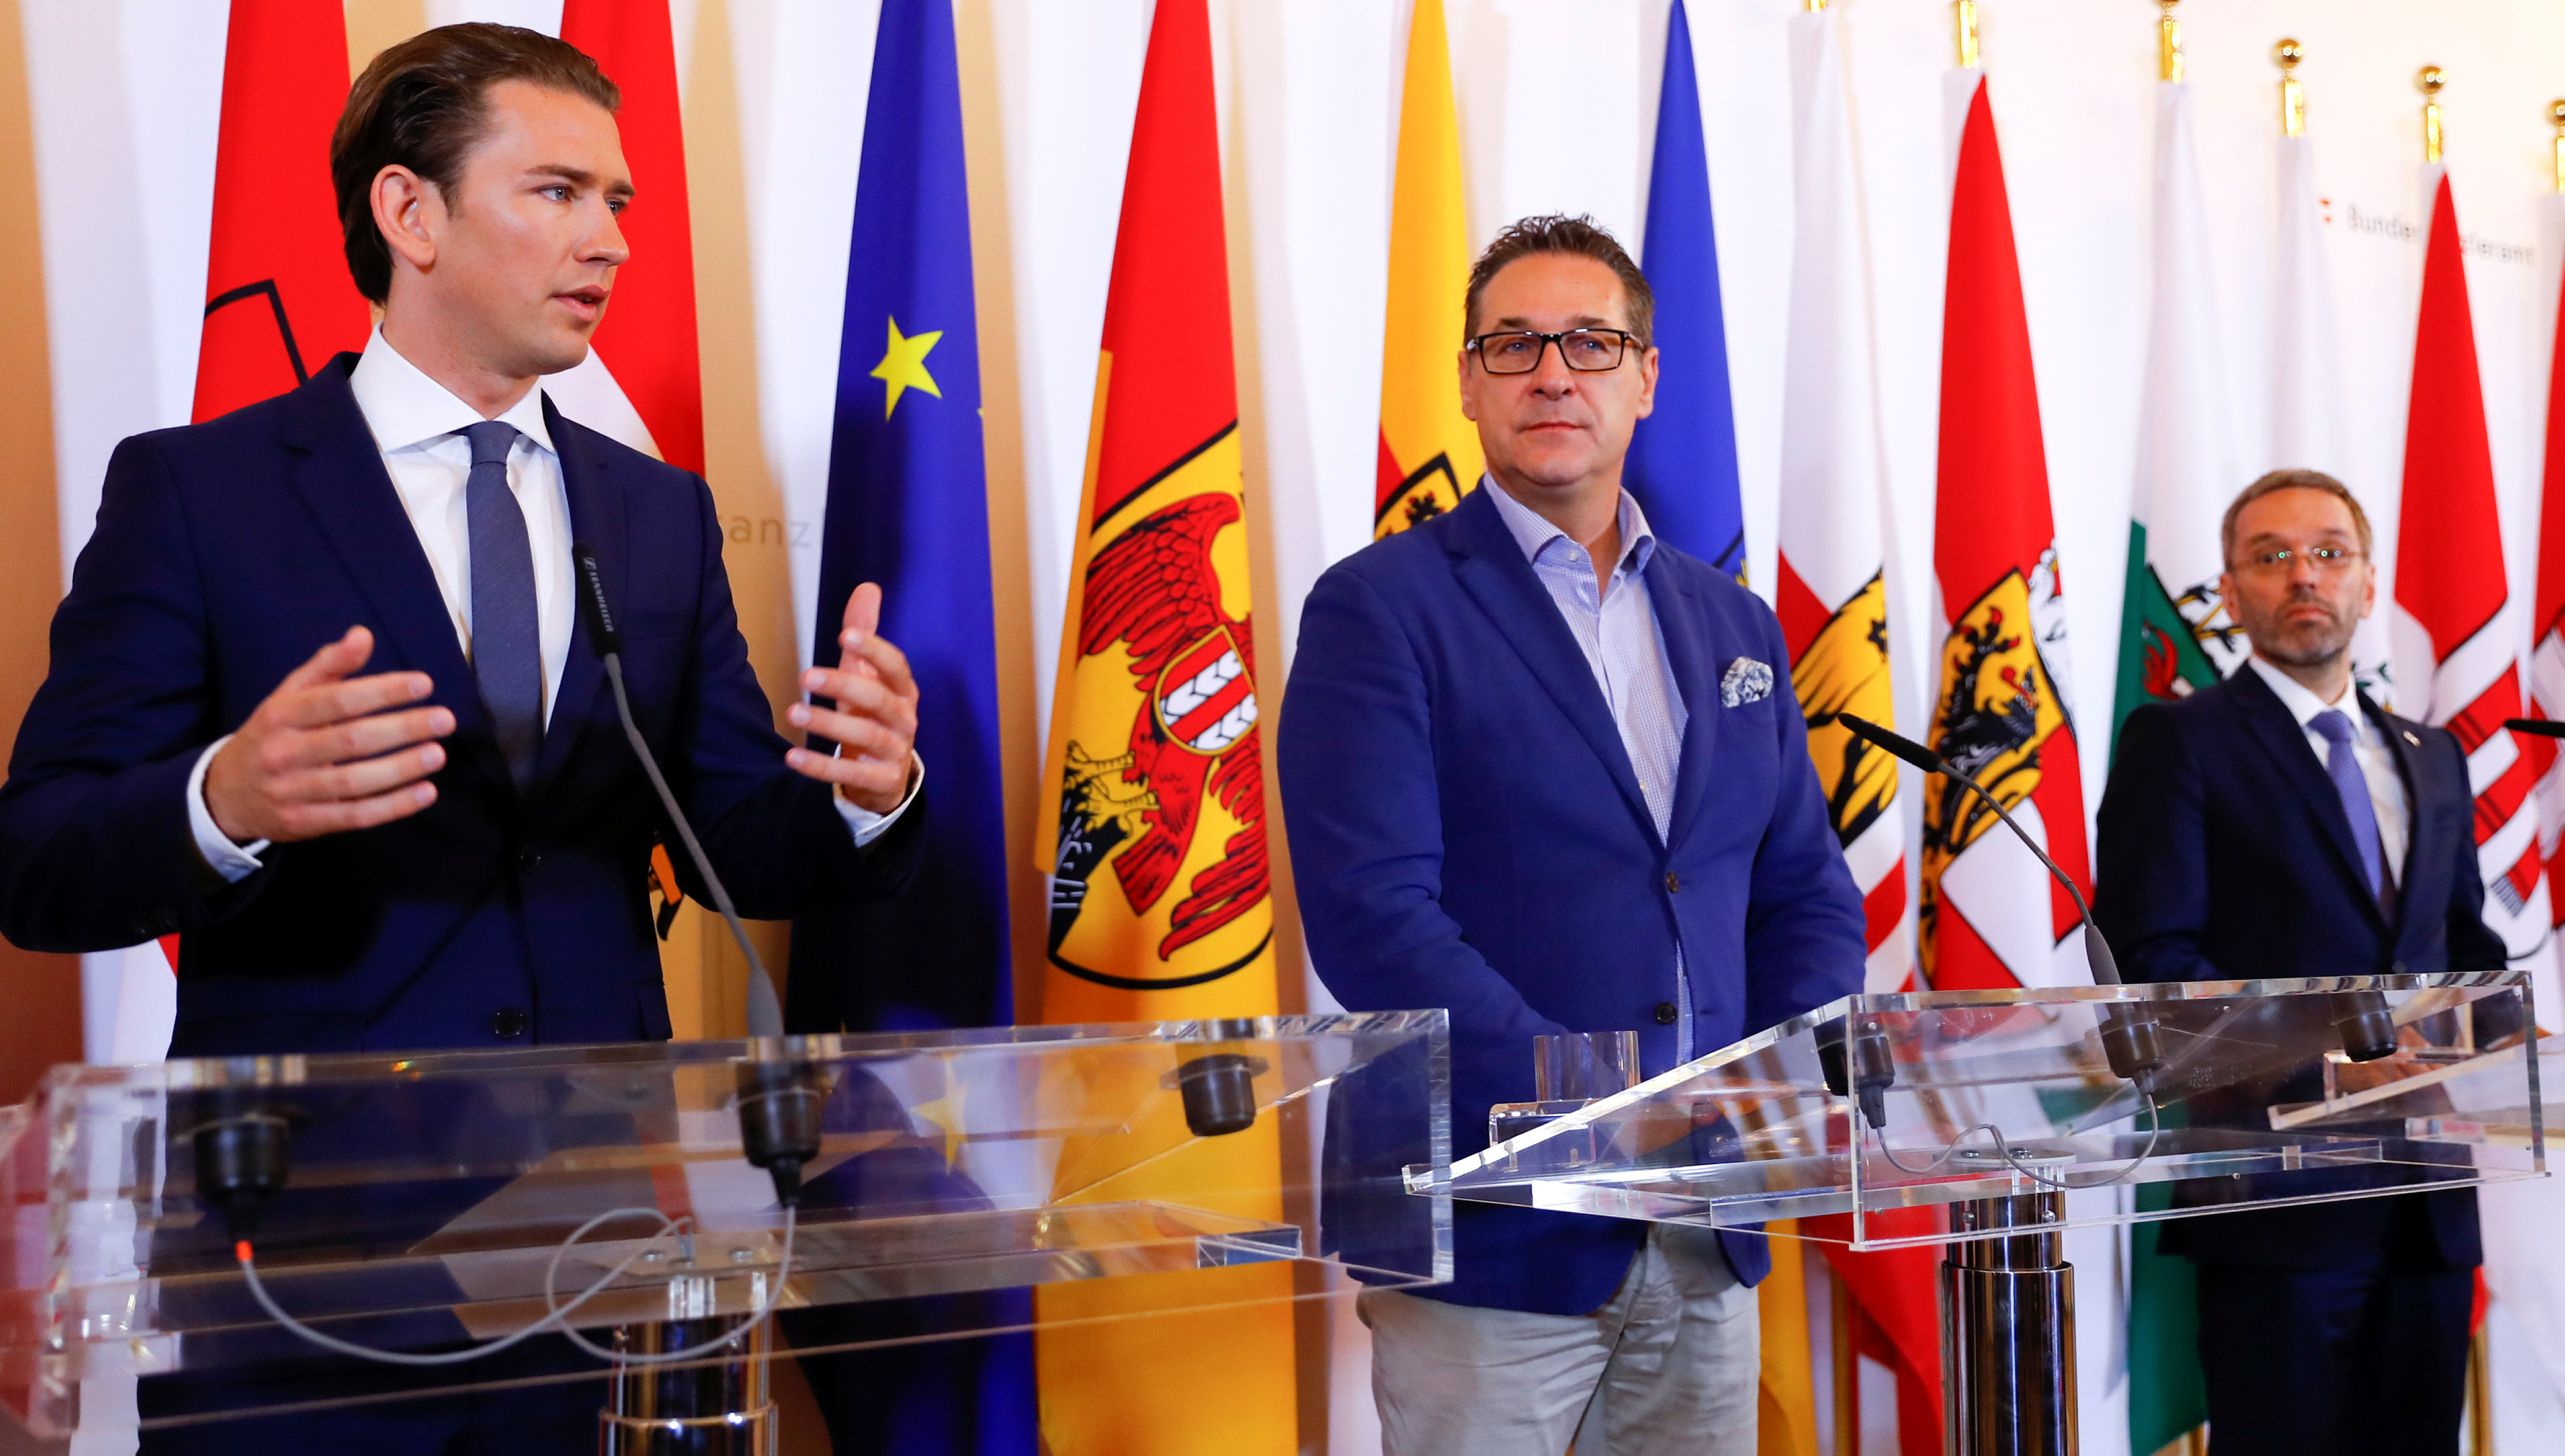 Austrian Chancellor Sebastian Kurz, Vice Chancellor Heinz-Christian Strache and Interior Minister Herbert Kickl attend a news conference in Vienna, Austria June 8, 2018. REUTERS/Leonhard Foeger